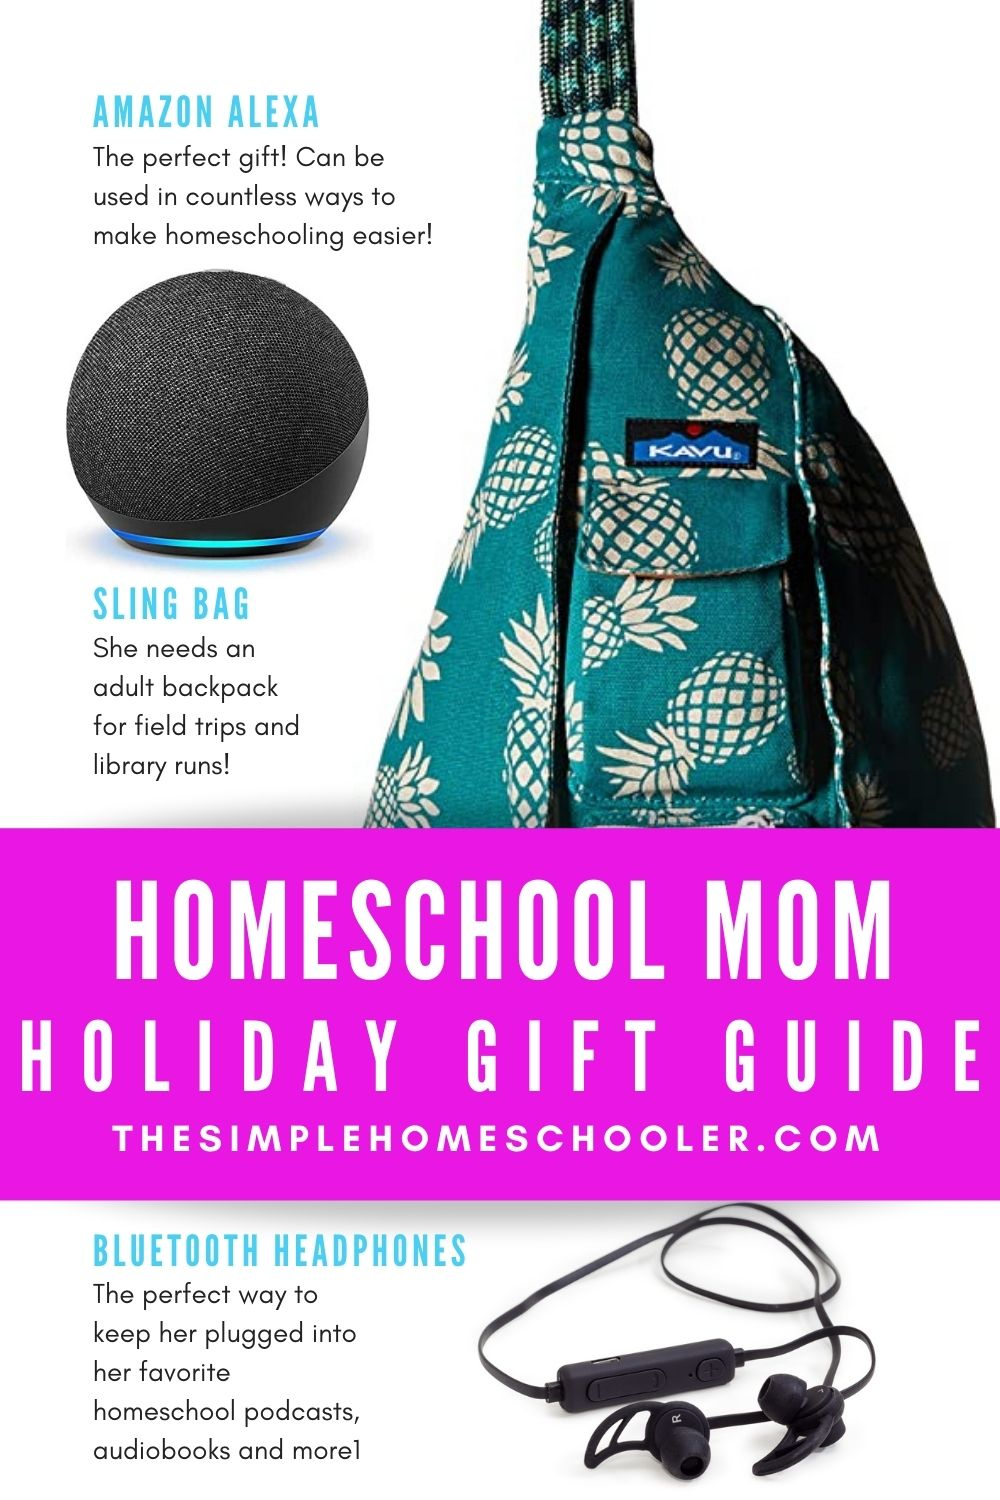 I bet we all have more homeschool moms in our life this Christmas! Be sure to recognize her hard work and surprise her with these fun gifts that any homeschool mom would love!